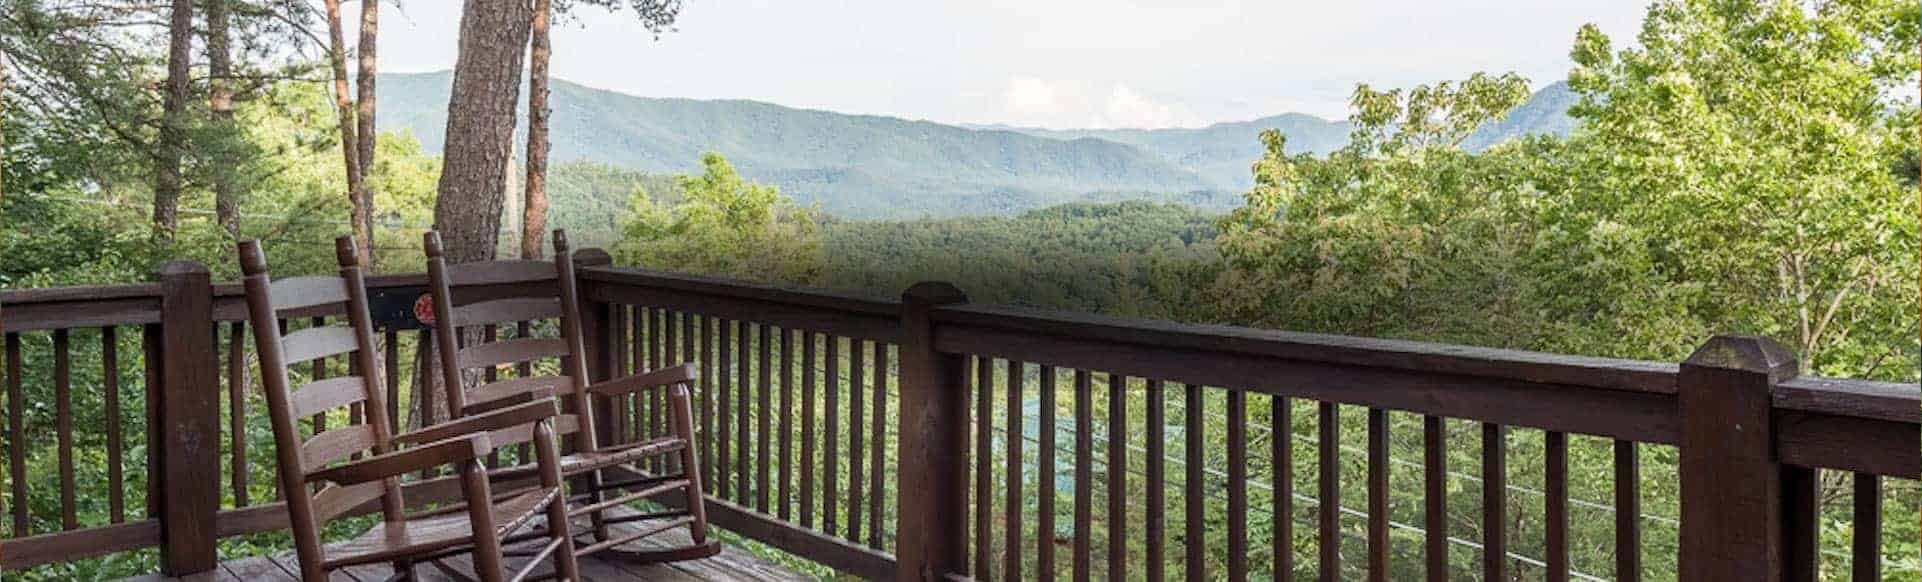 deck of cabin with mountain view